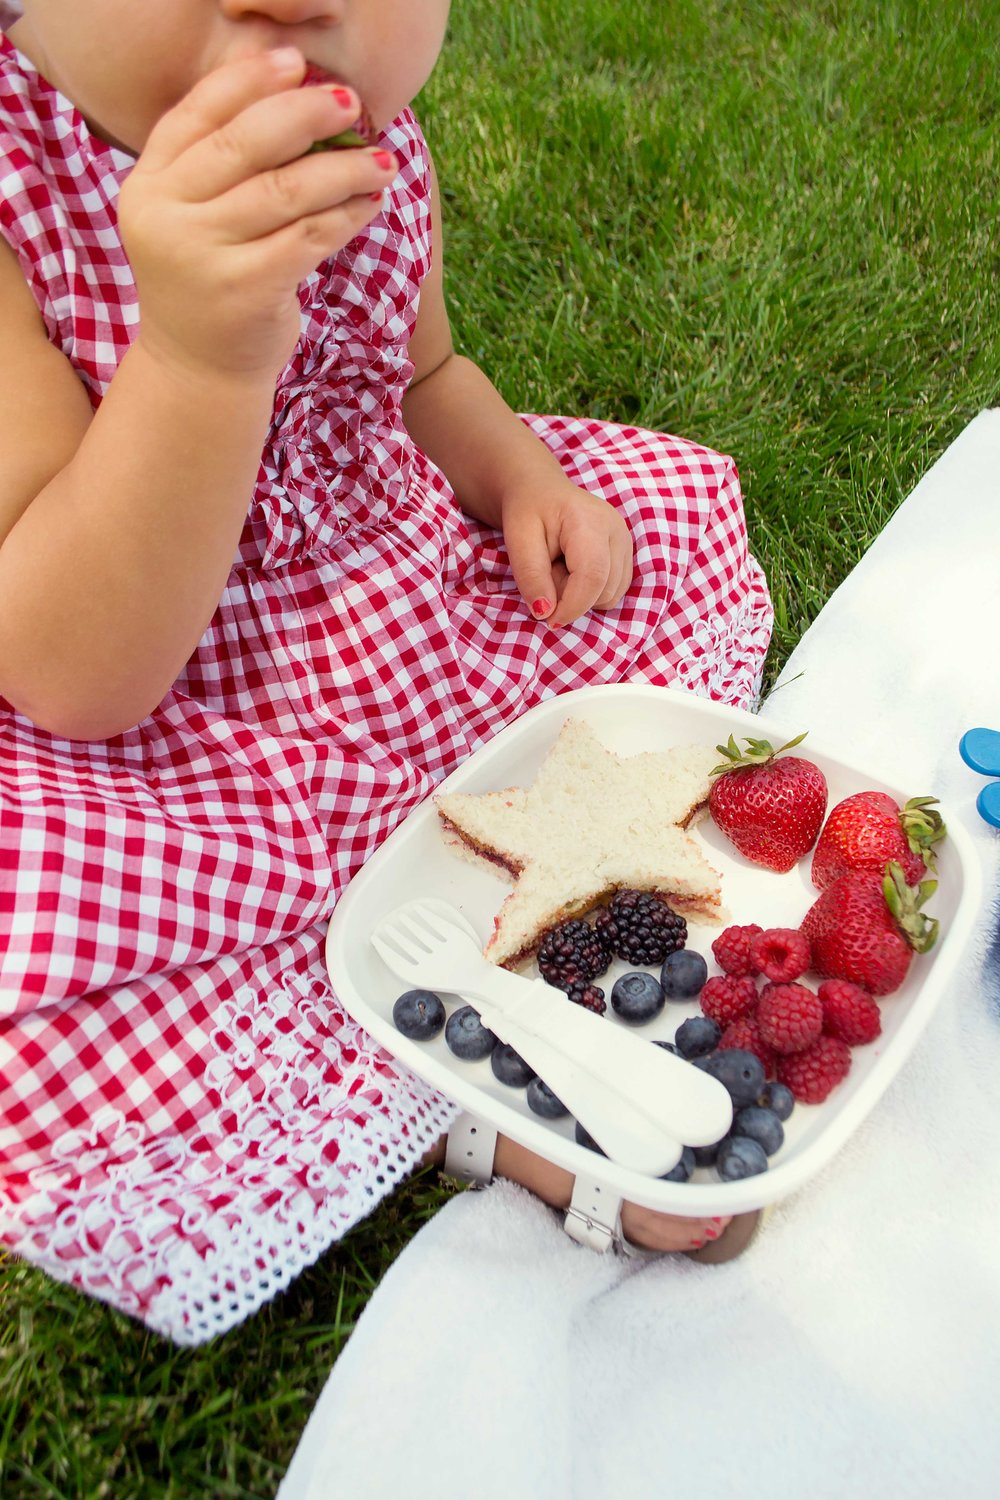 fourth of July picnic